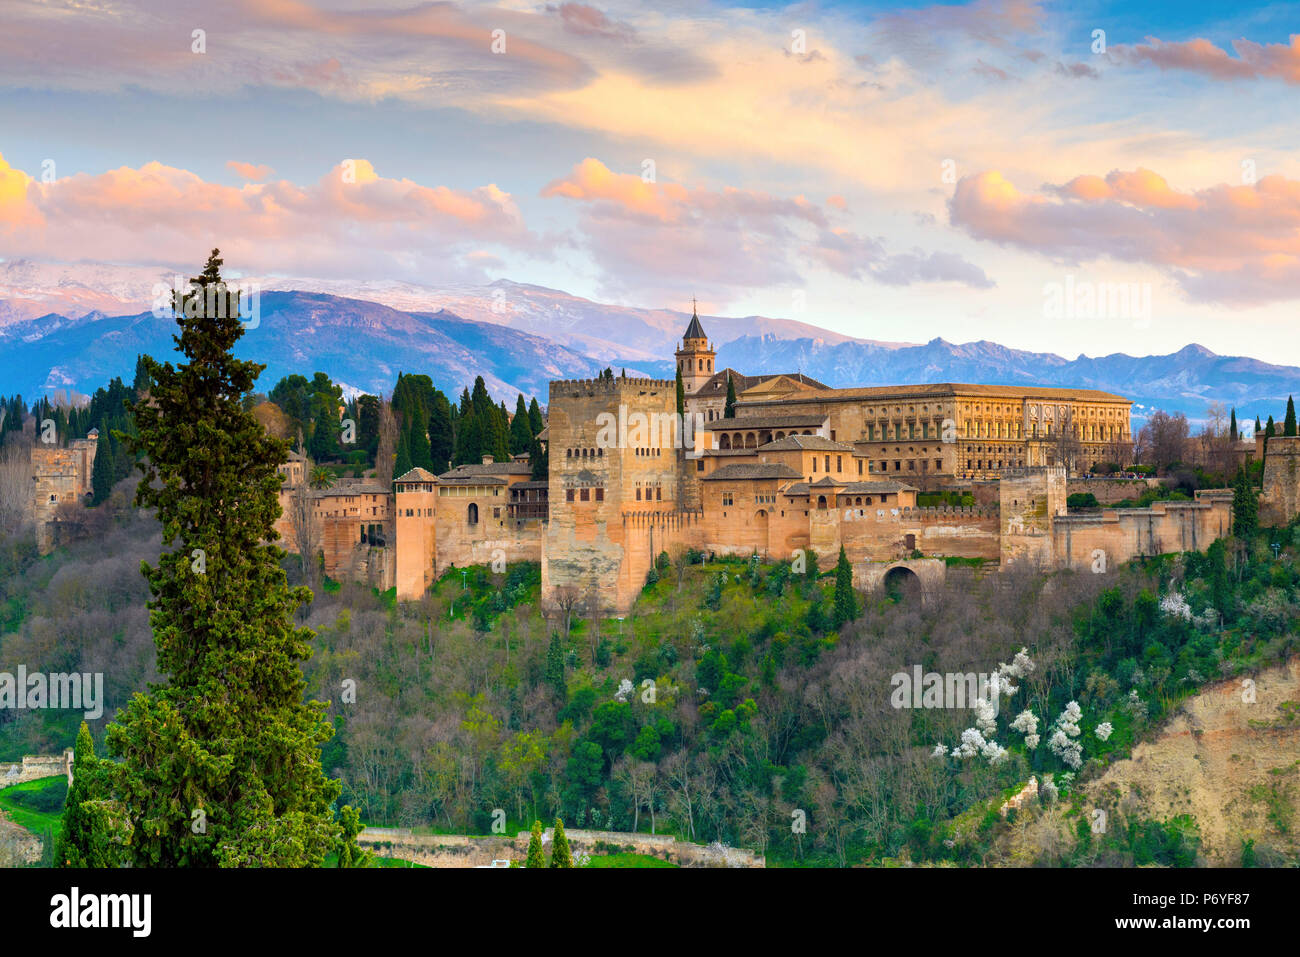 Spain, Andalusia, Granada, Alhambra Palace - Stock Image